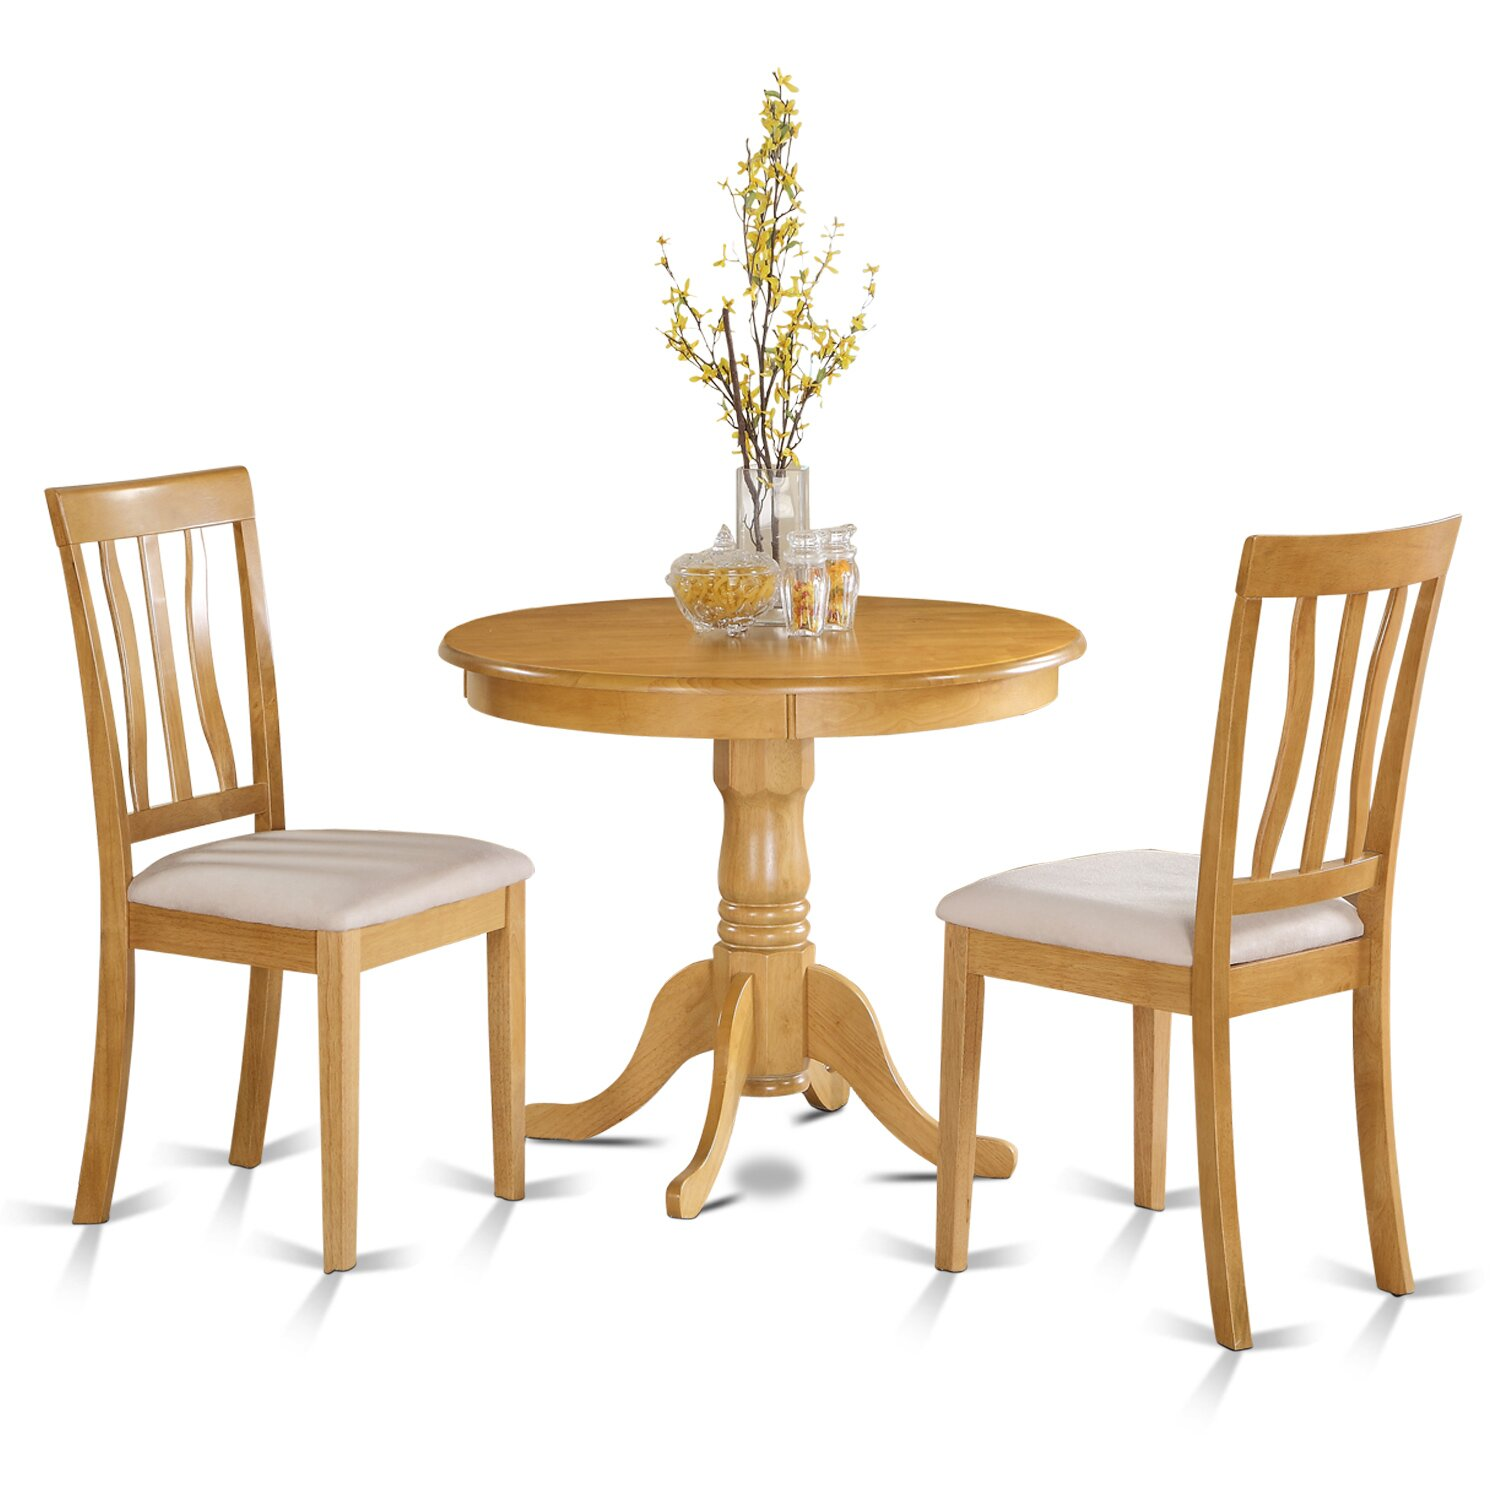 Dining Table Set For 2 Chairs 3 Piece Kitchen Room: East West 3 Piece Bistro Set